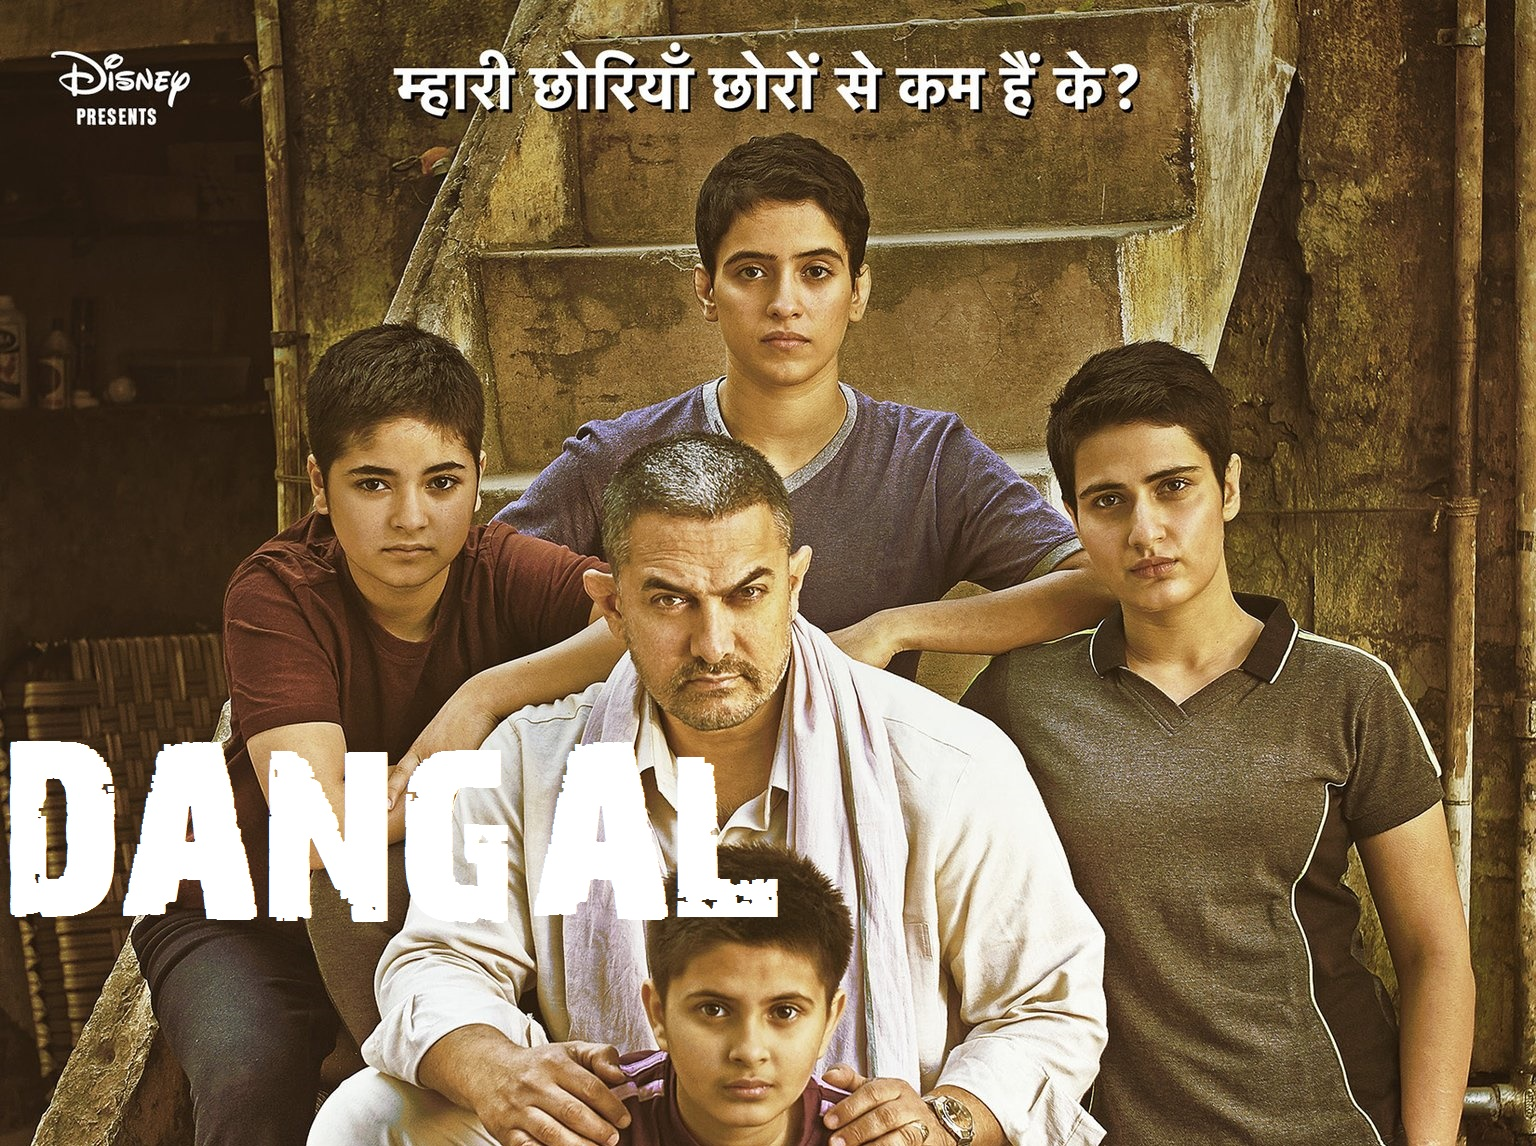 dangal_trailer_aamir_songs_download_trailer_movie_mp3_torrent_vikrmn_author_ca_verma__guru_with_guitar_10alone_kuwait_chartered_accountant